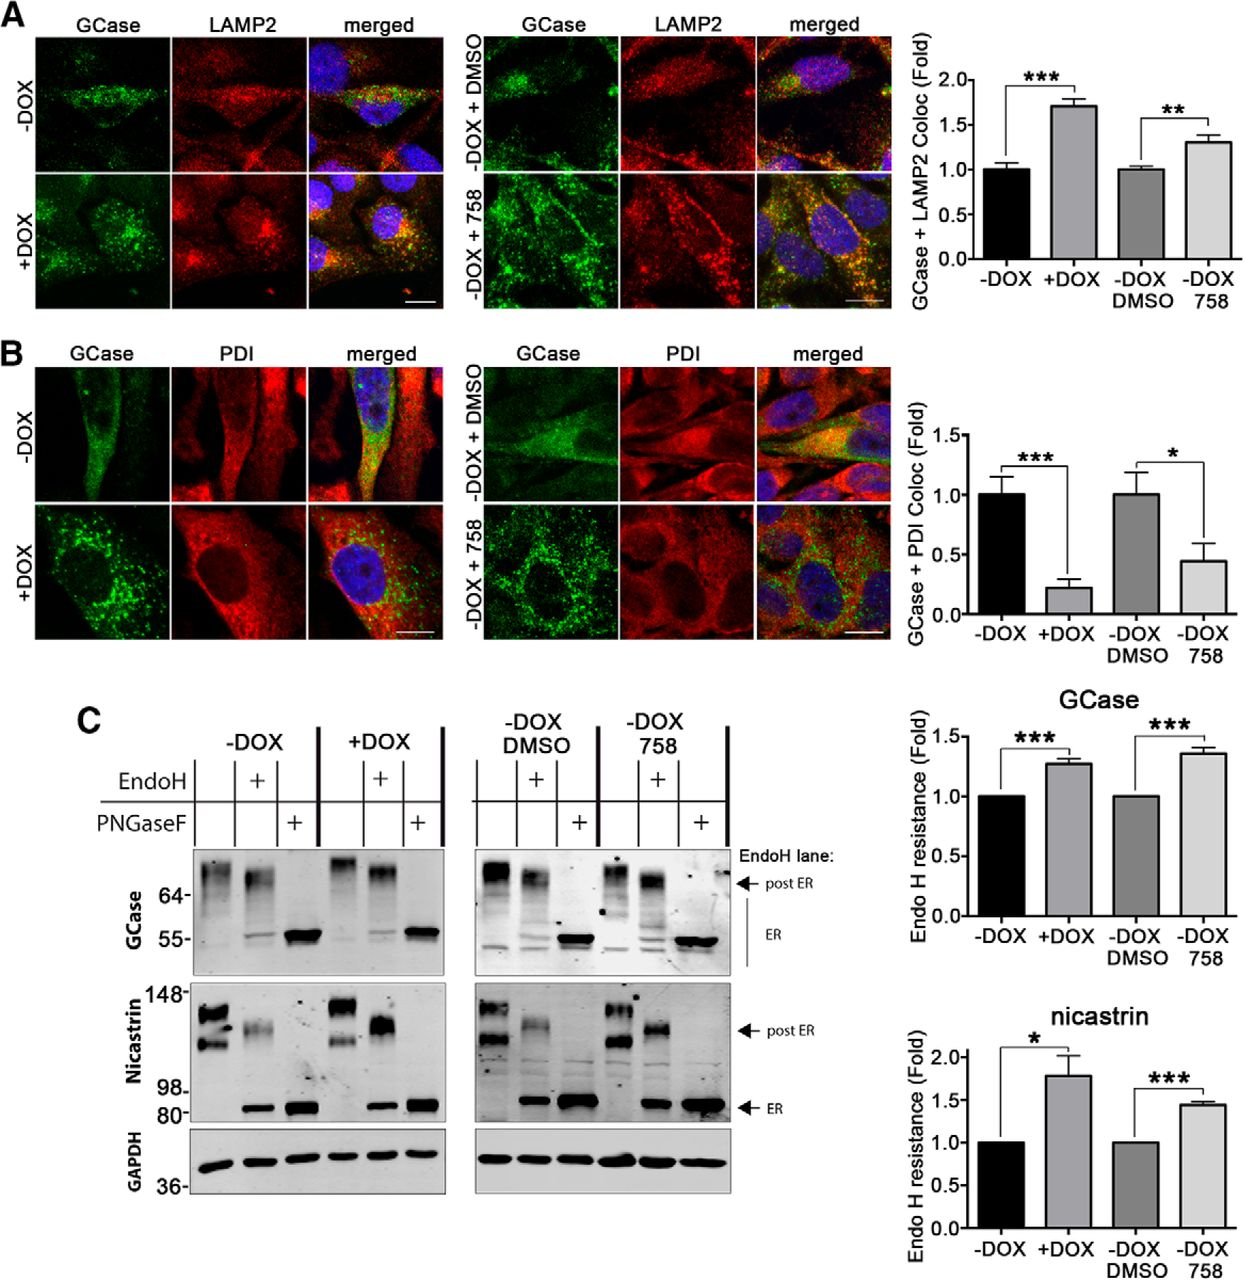 Activation of β-Glucocerebrosidase Reduces Pathological α-Synuclein